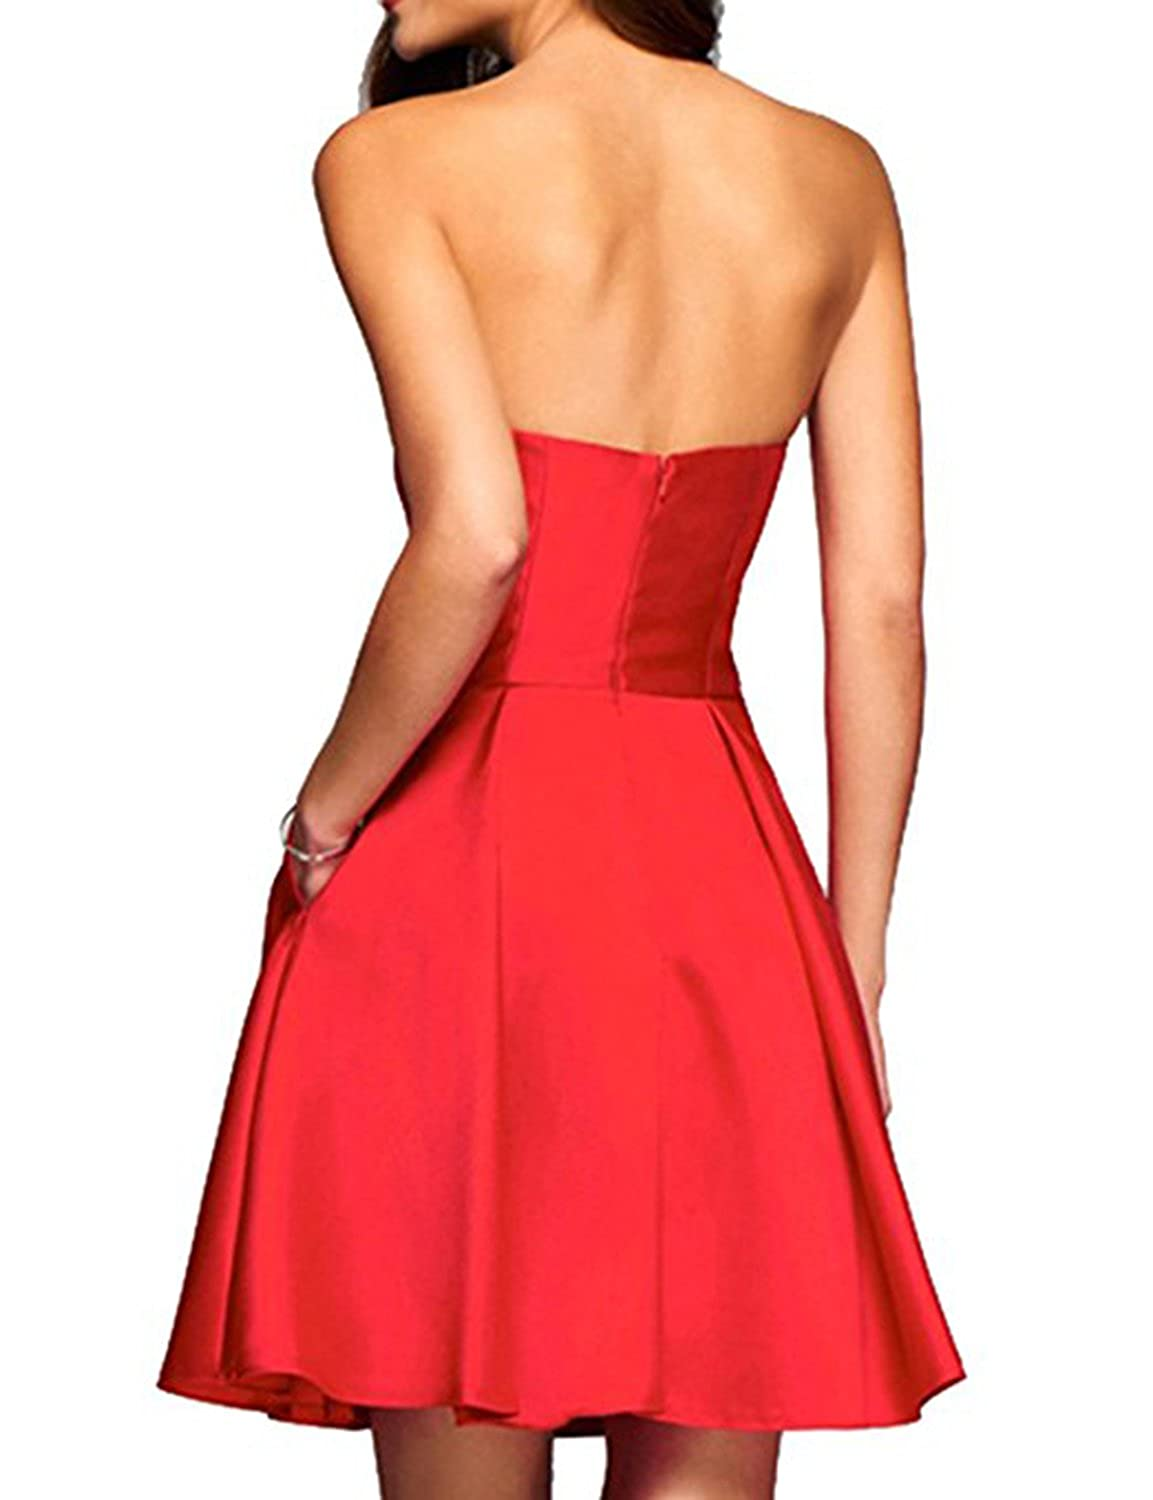 Udresses Womens 2018 Short Prom Dress Pocket Elegant Homecoming Party Gown PO53 at Amazon Womens Clothing store: